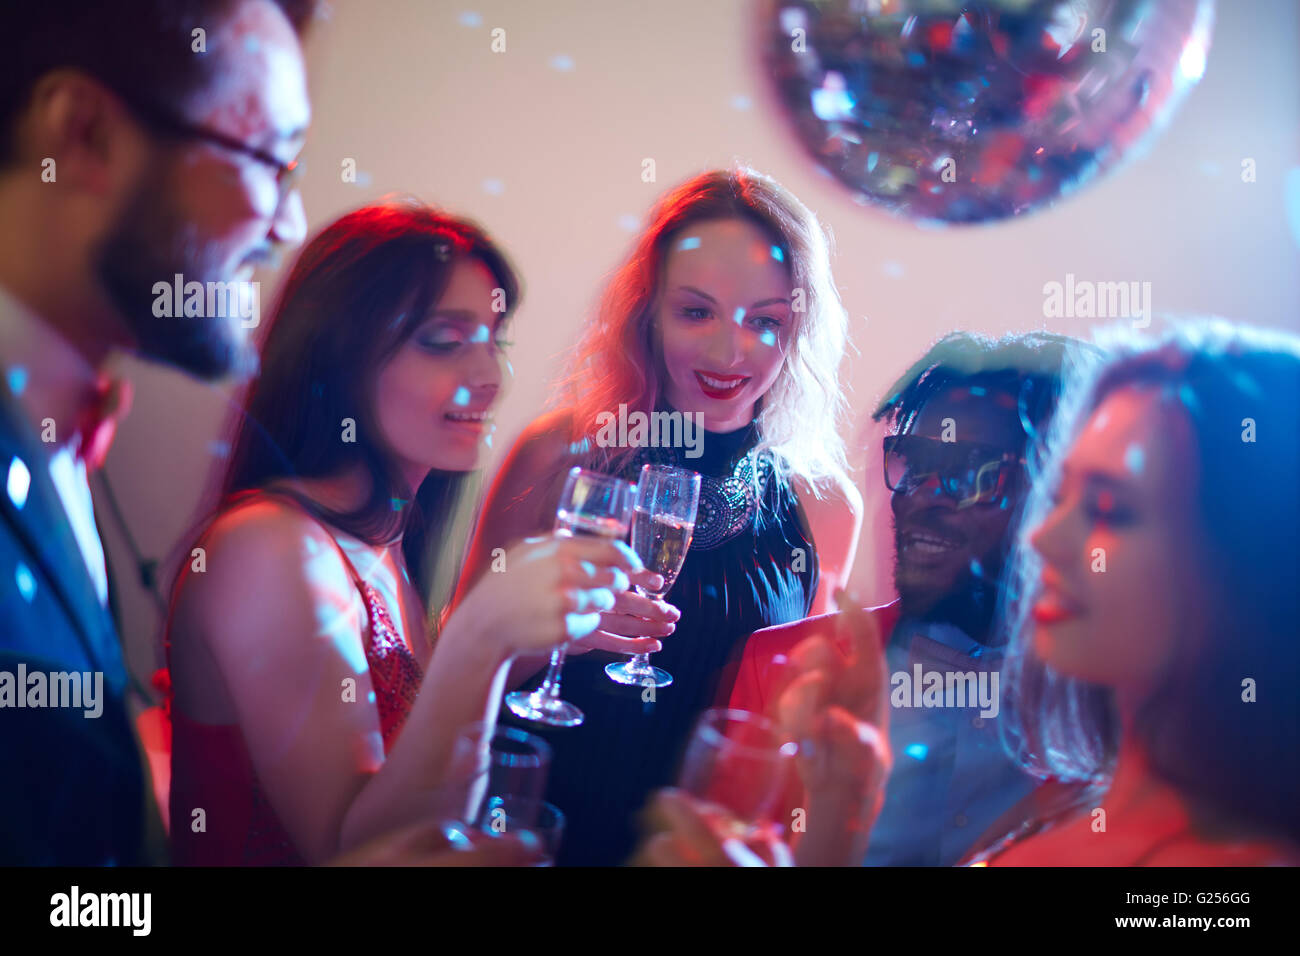 Party with champagne - Stock Image